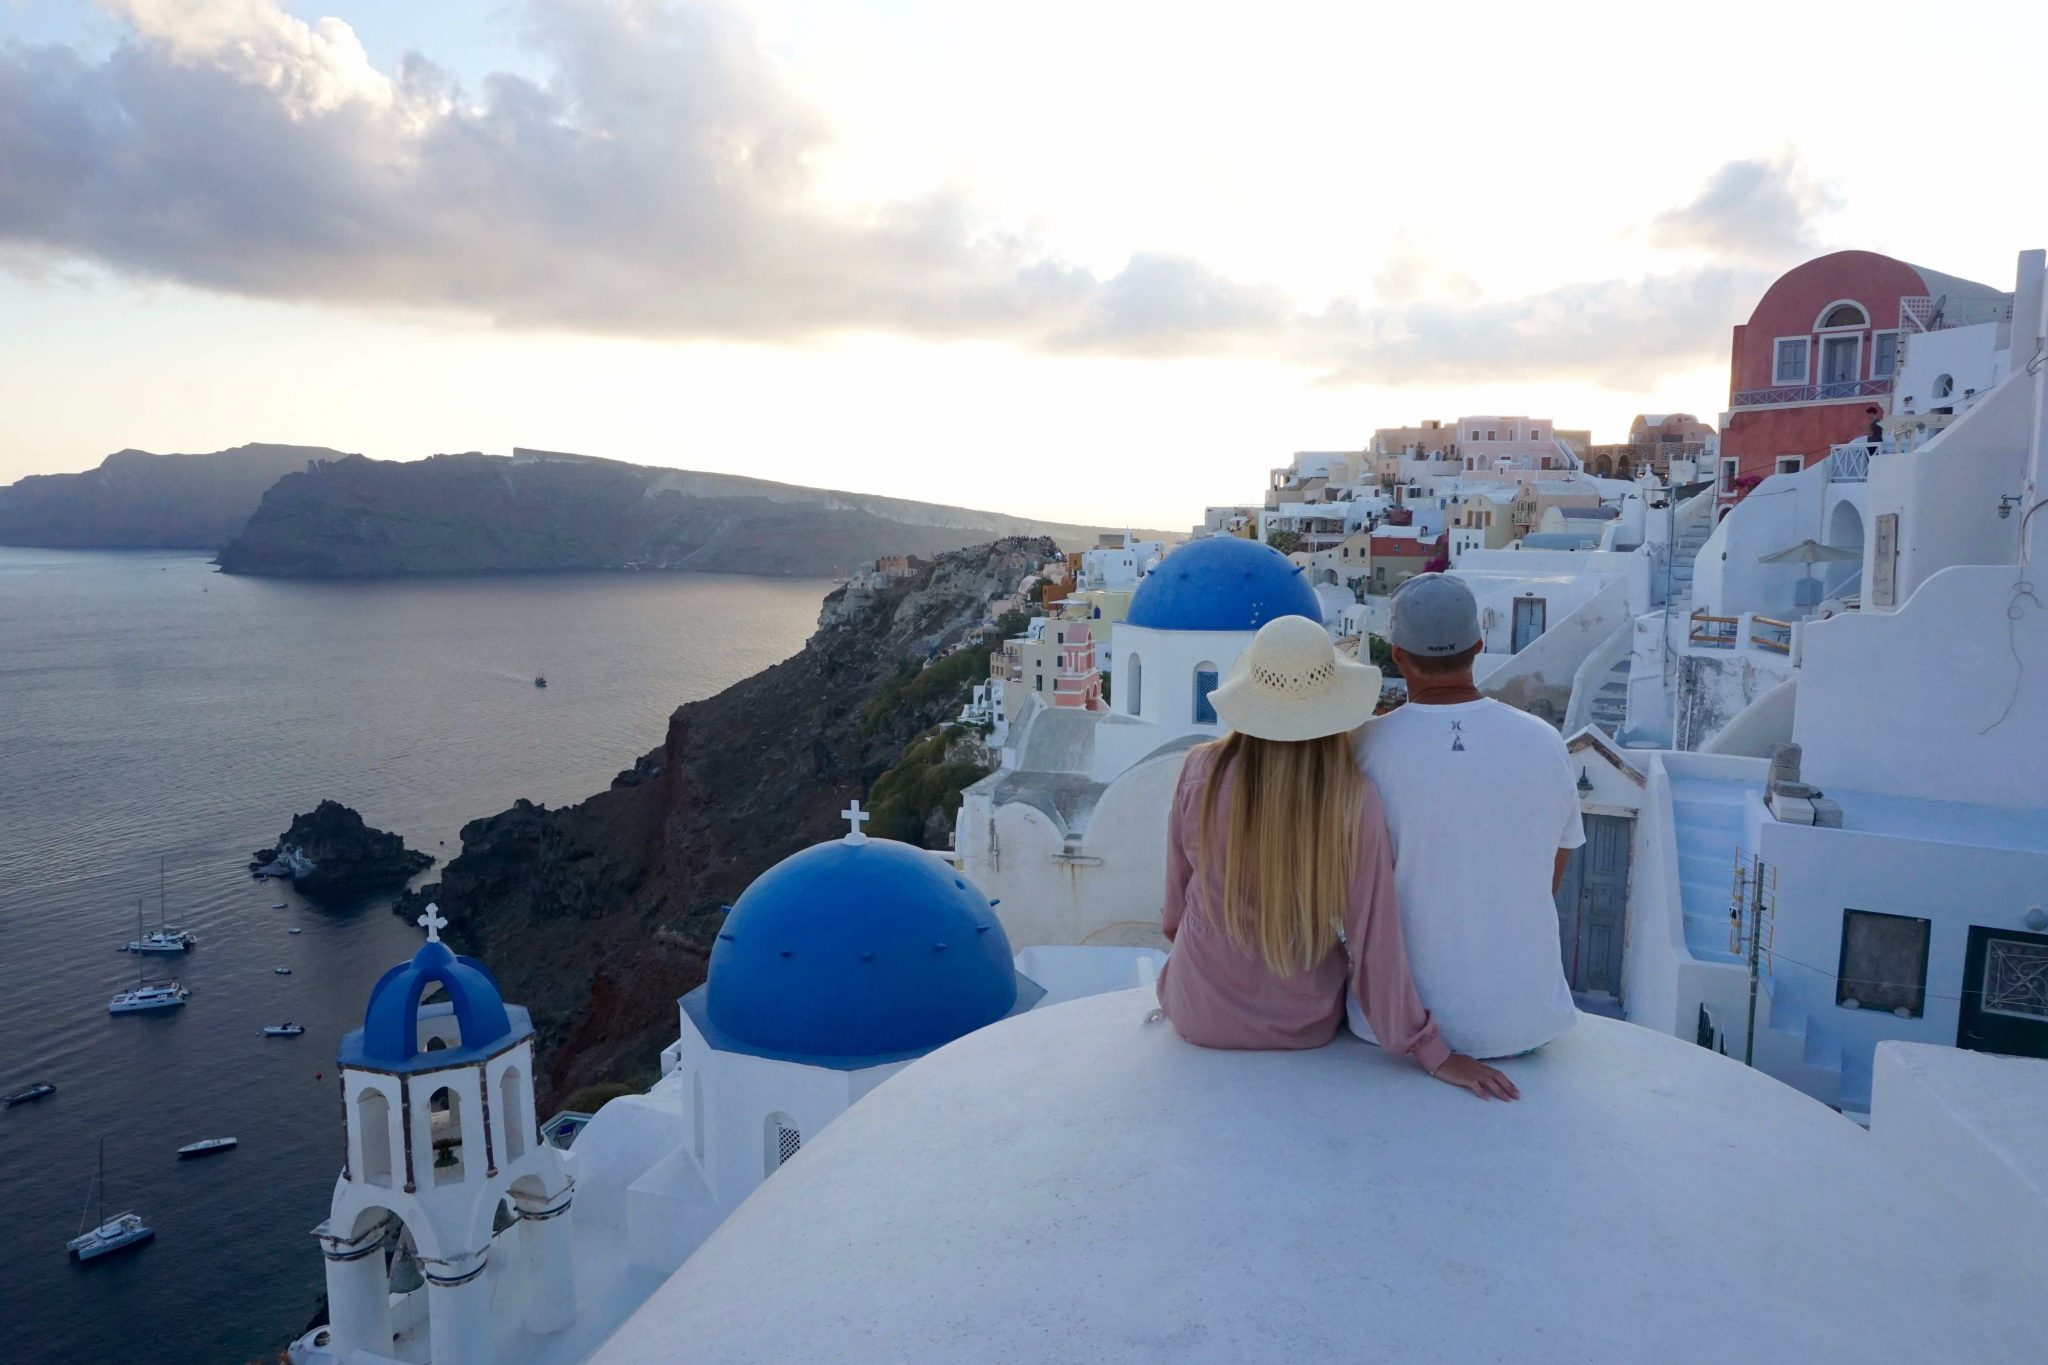 rooftop of Airbnb in Oia, Santorini